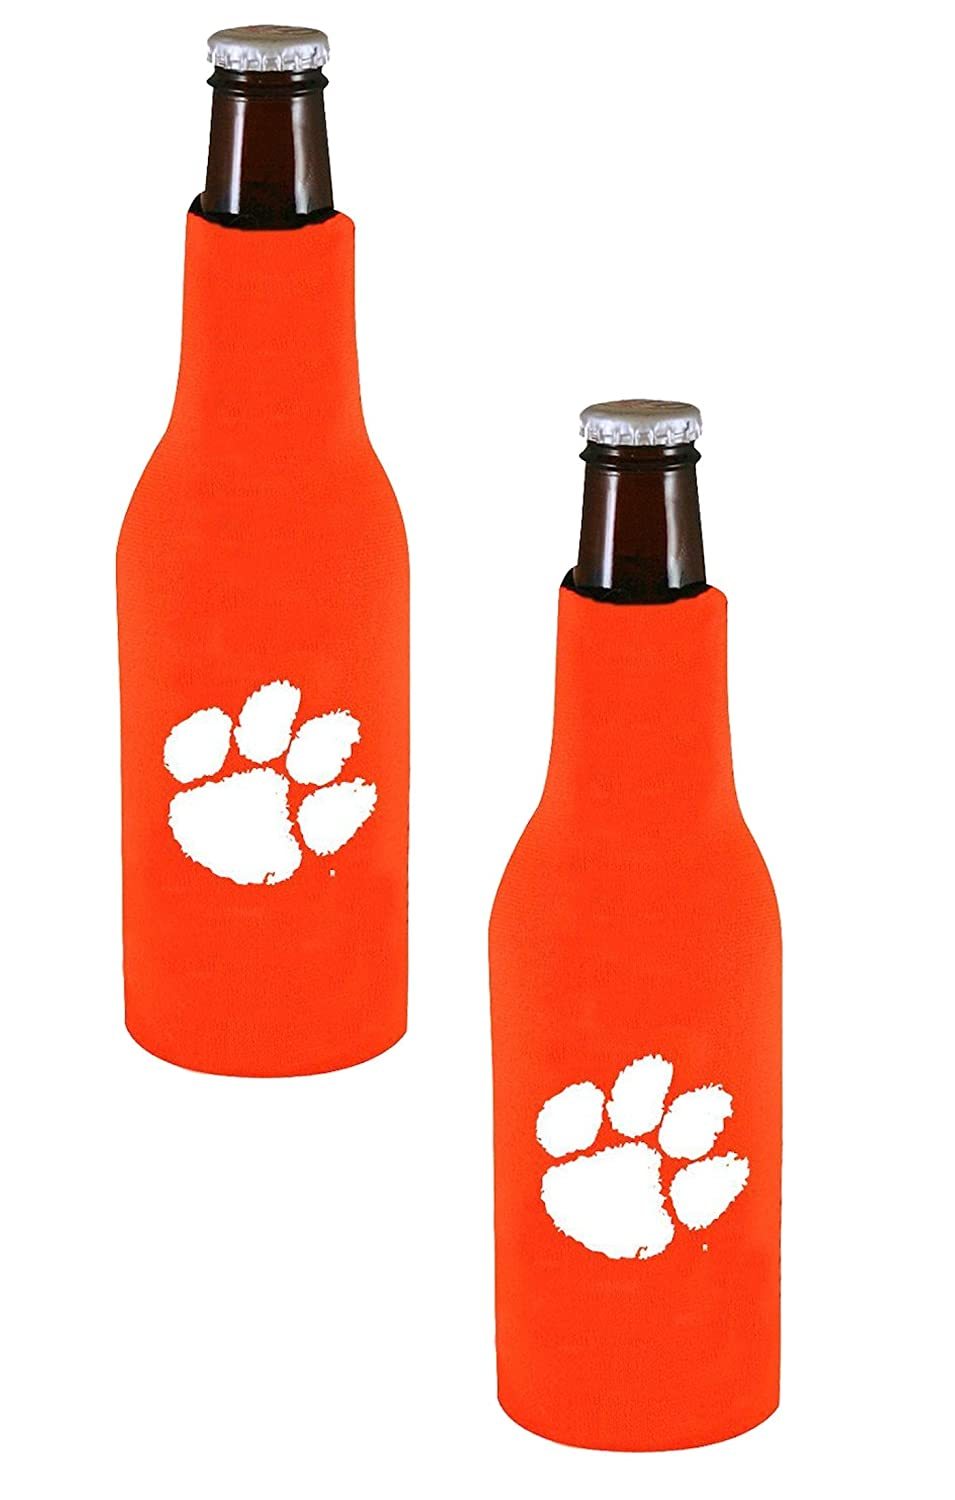 Official National Collegiate Athletic Association Fan Shop Authentic NCAA 2 pack Insulated Bottle Cooler. Show Team Pride At Home Tailgating or At the Game